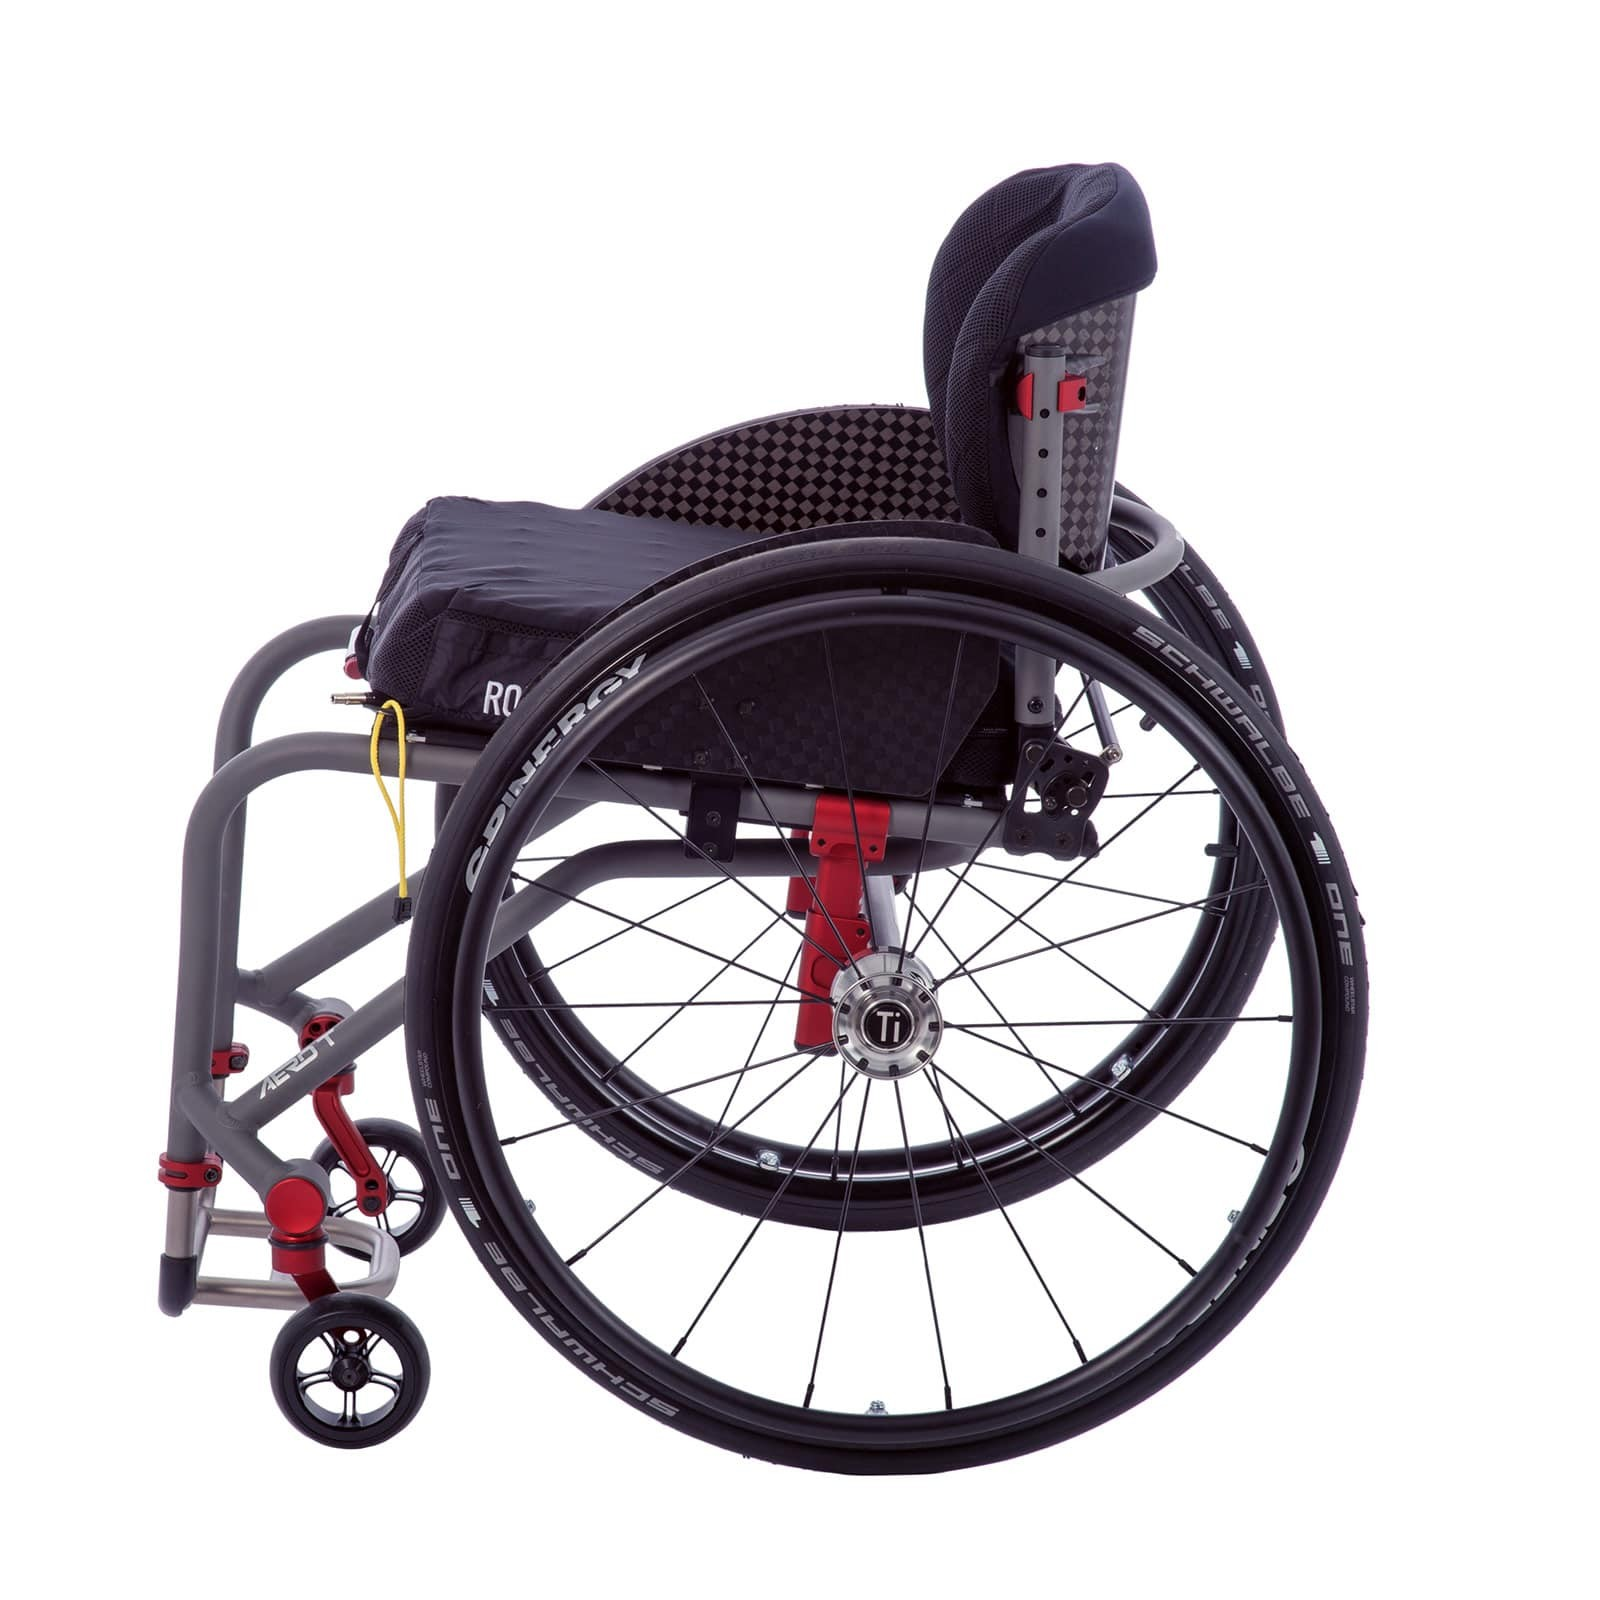 Permobil TiLite Aero T Rigid Lightweight Wheelchair